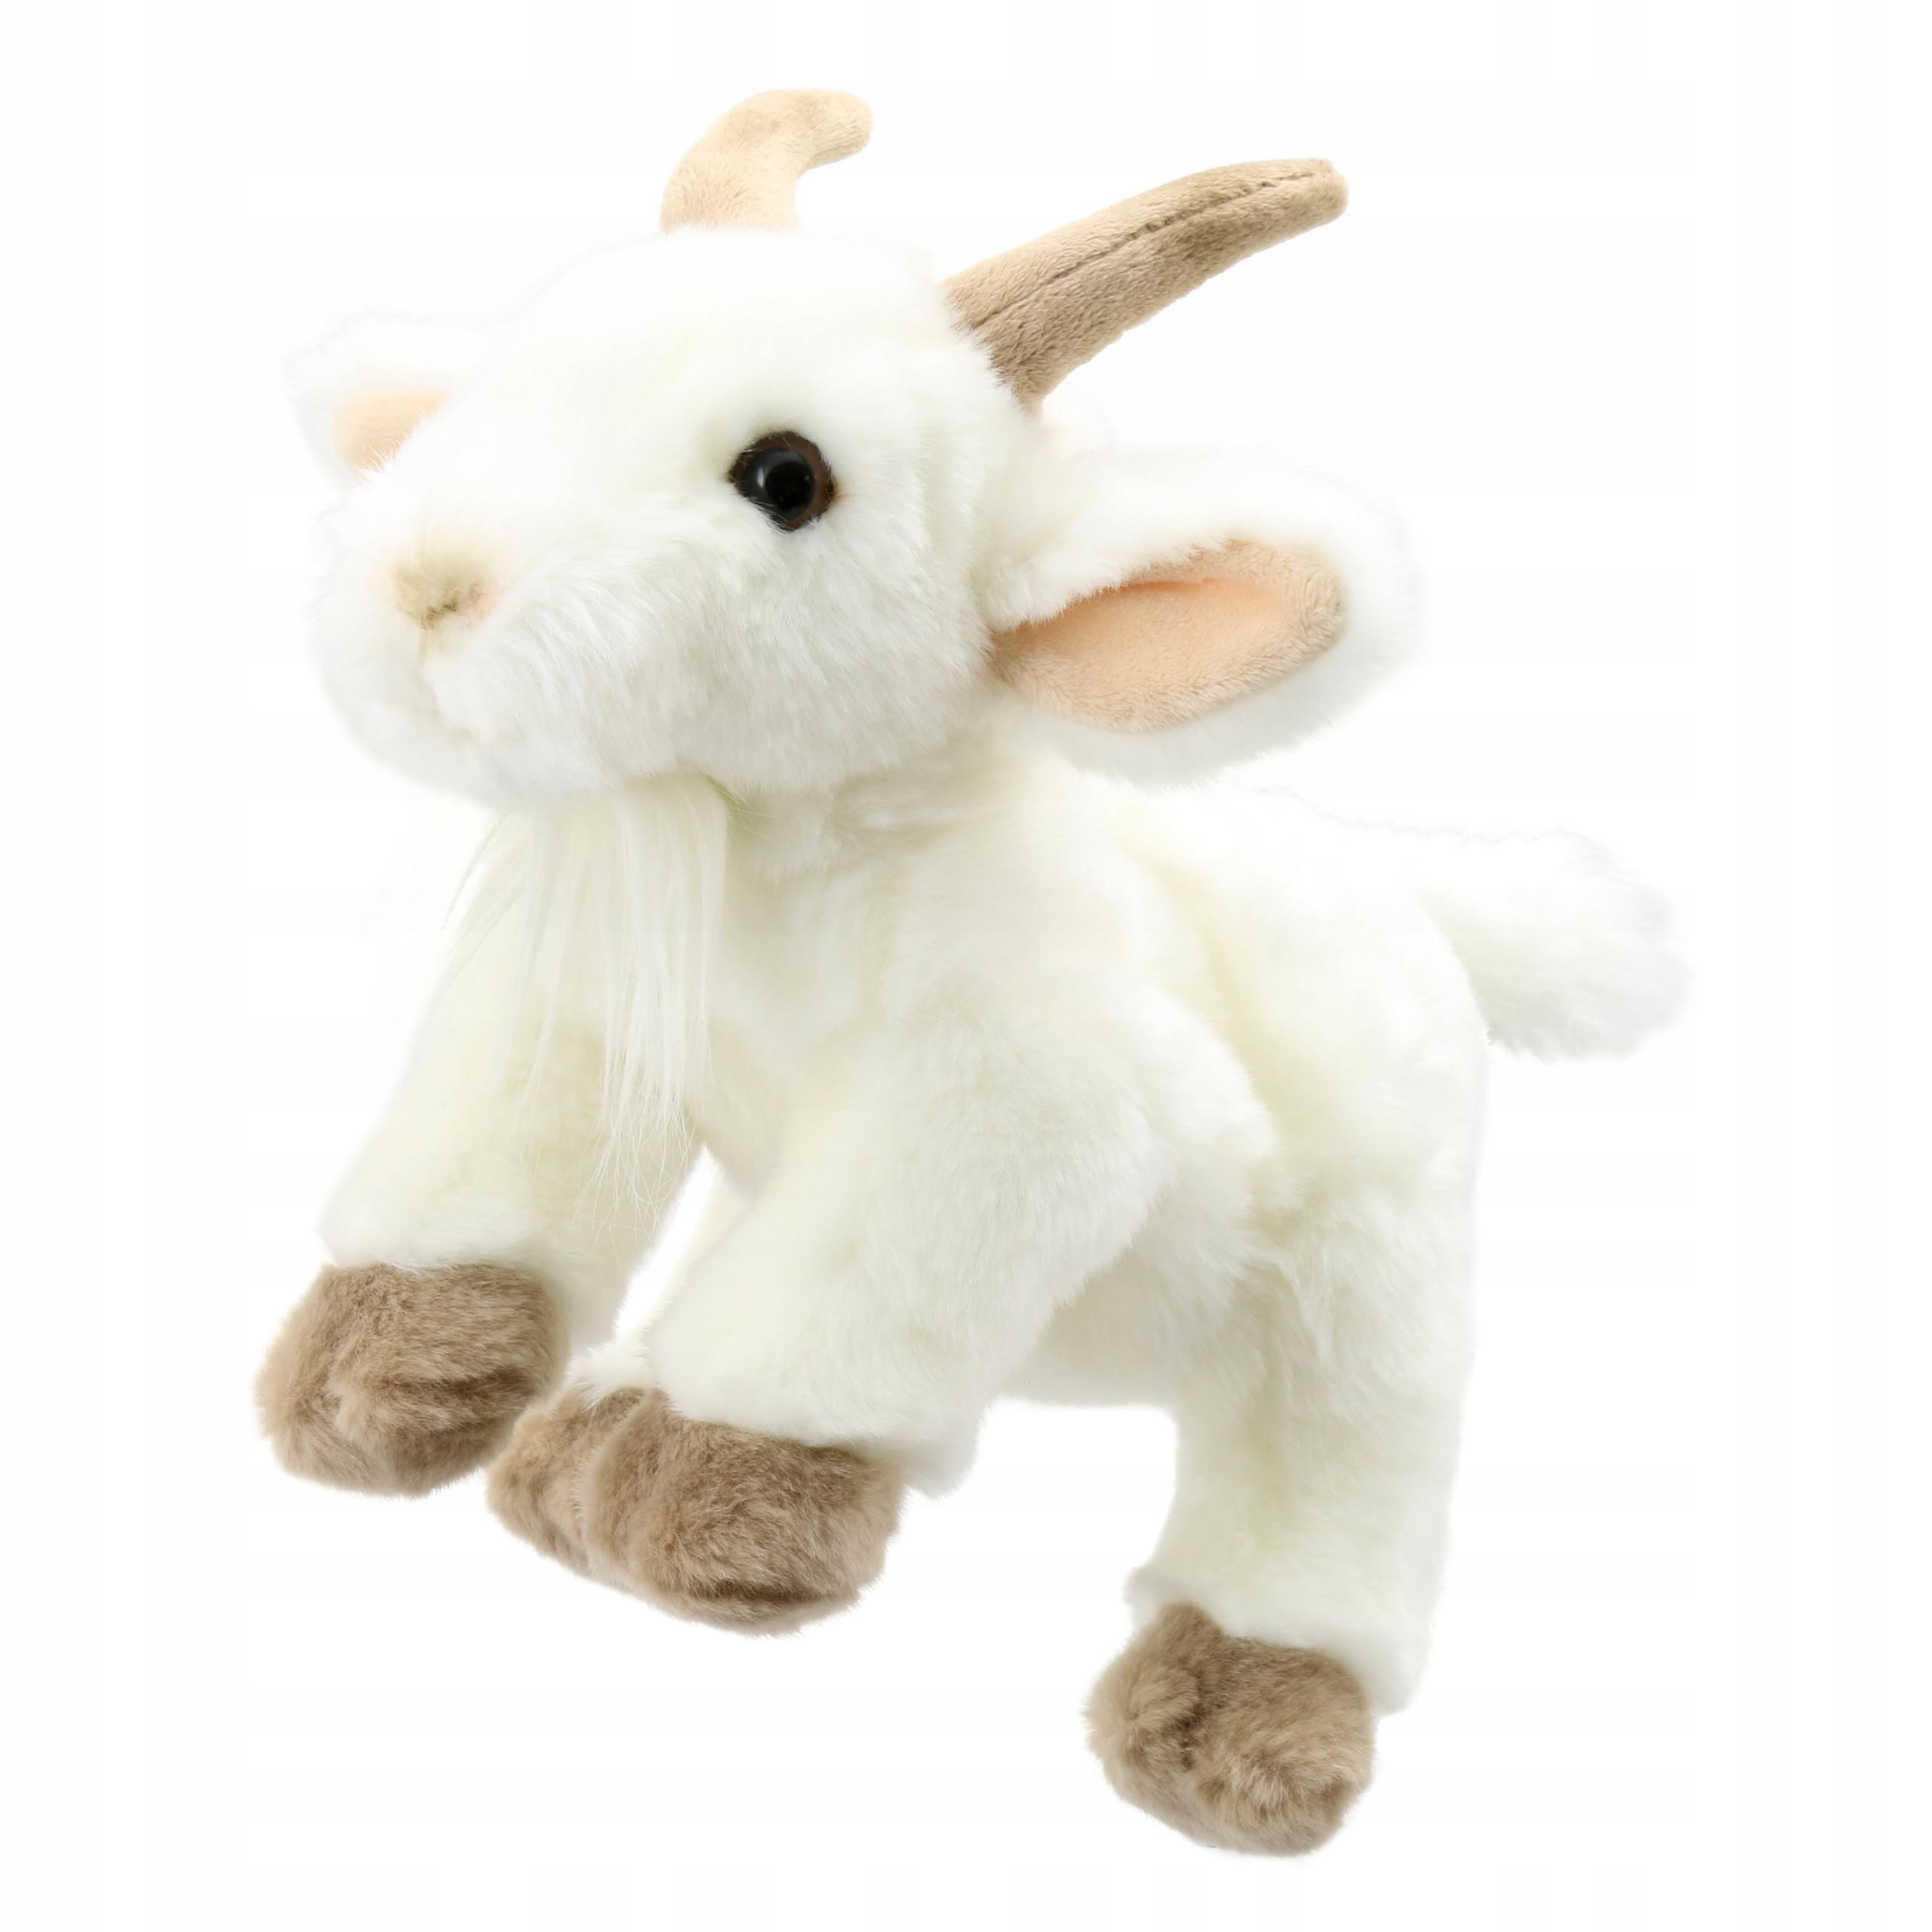 Puppet Company Full-bodied Animal Puppet - Goat, White and Beige